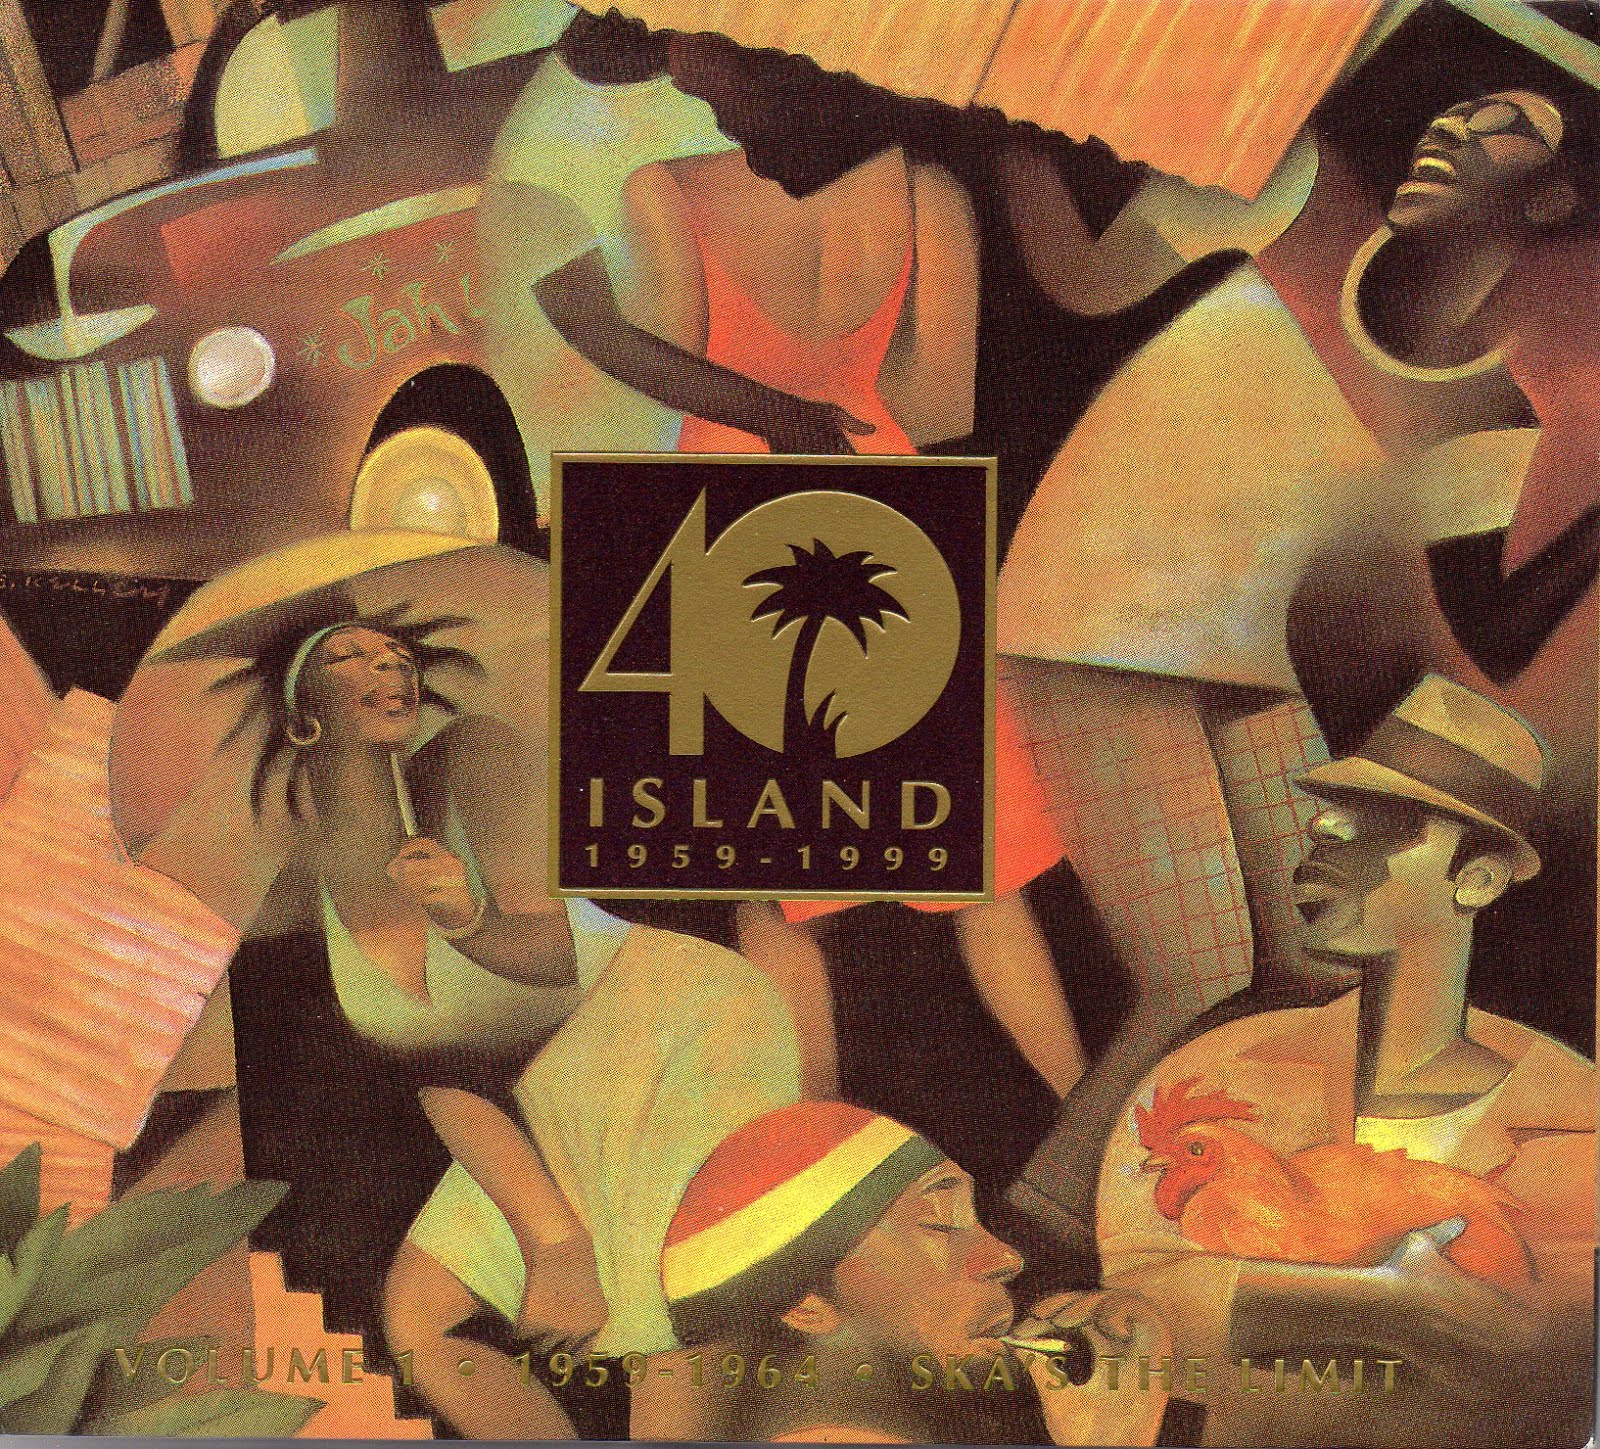 Island Records 40 Years Vol.1